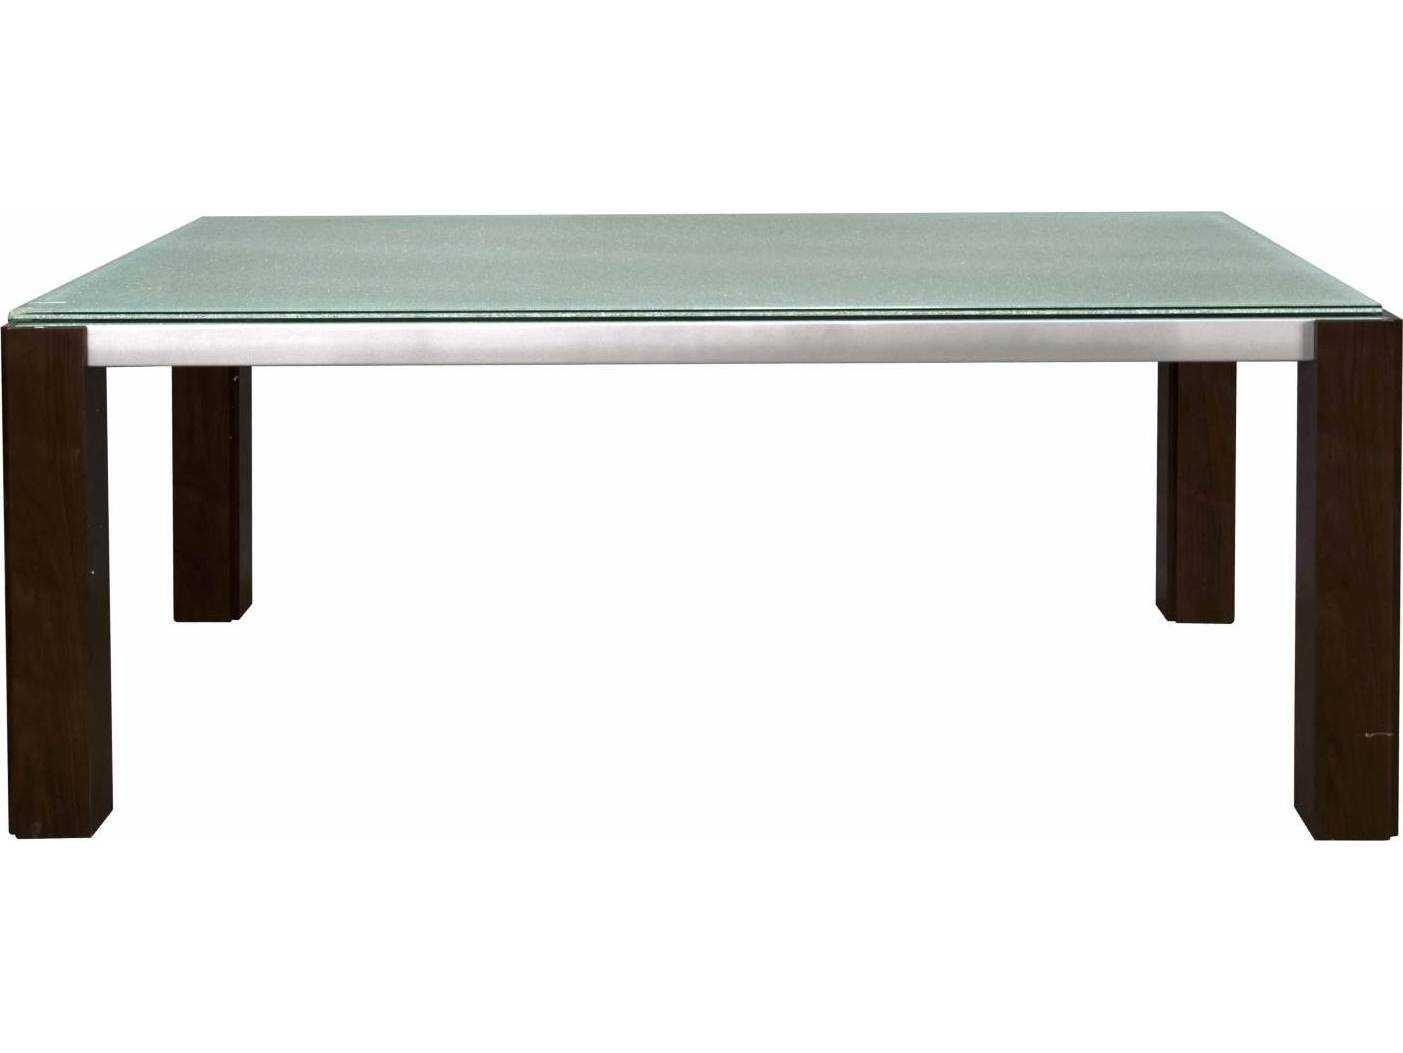 Star International Furniture Ritz Veronica Dining Table